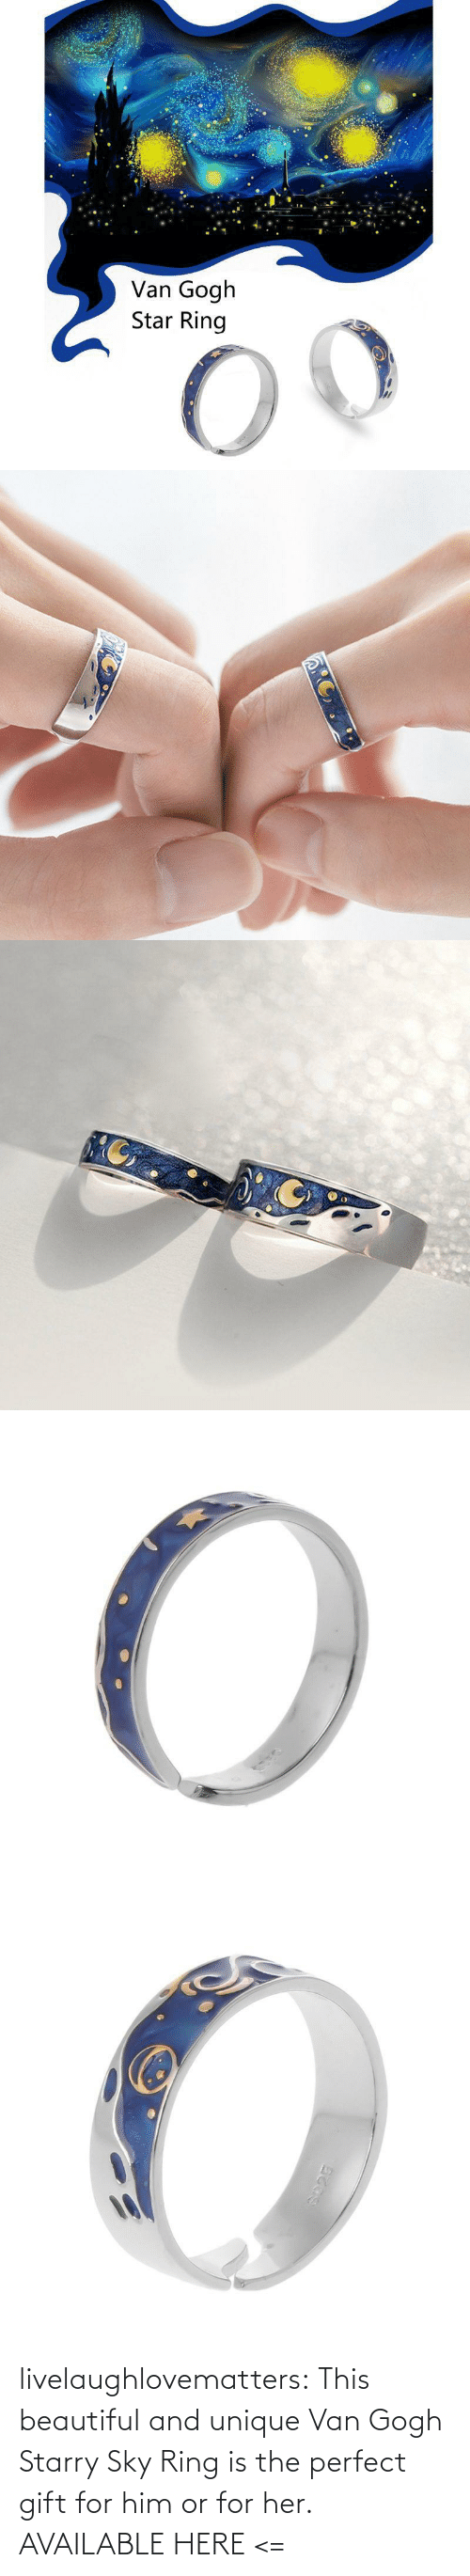 van gogh: livelaughlovematters:  This beautiful and unique Van Gogh Starry Sky Ring is the perfect gift for him or for her. AVAILABLE HERE <=